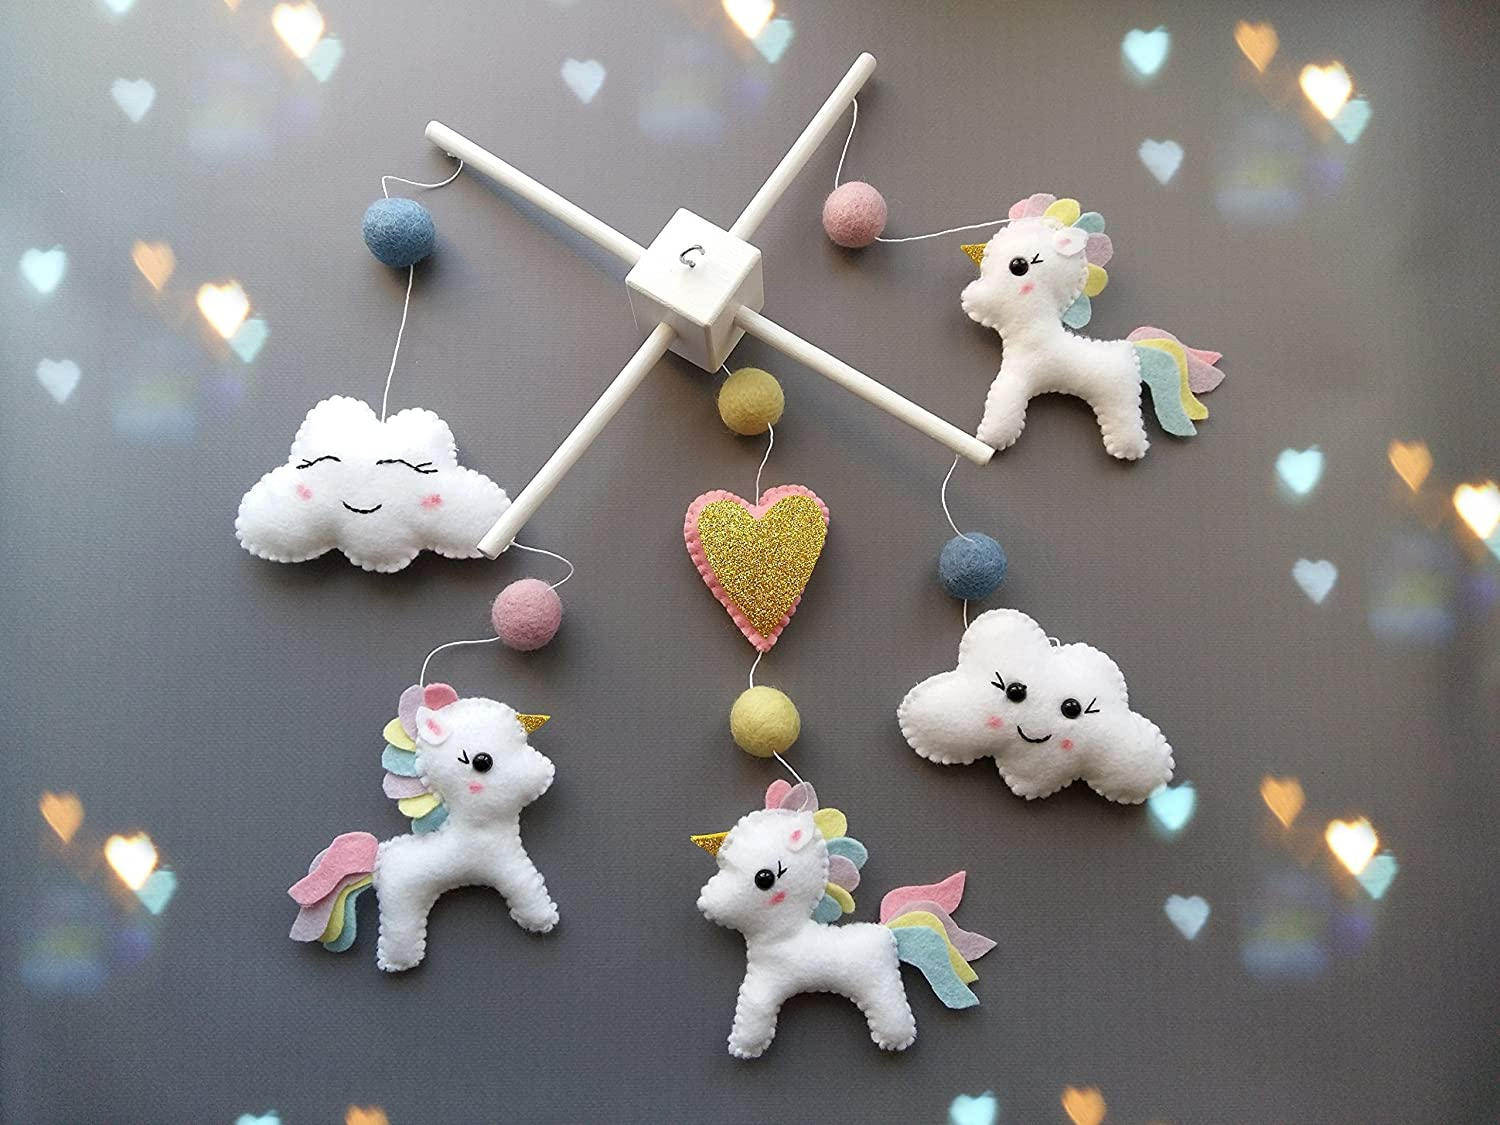 amazoncom mobiles  nursery décor handmade products - unicorn baby mobile baby crib mobile modern nursery mobile cloud cot mobilerainbow uncorn baby mobile baby girl mobile pactel colors